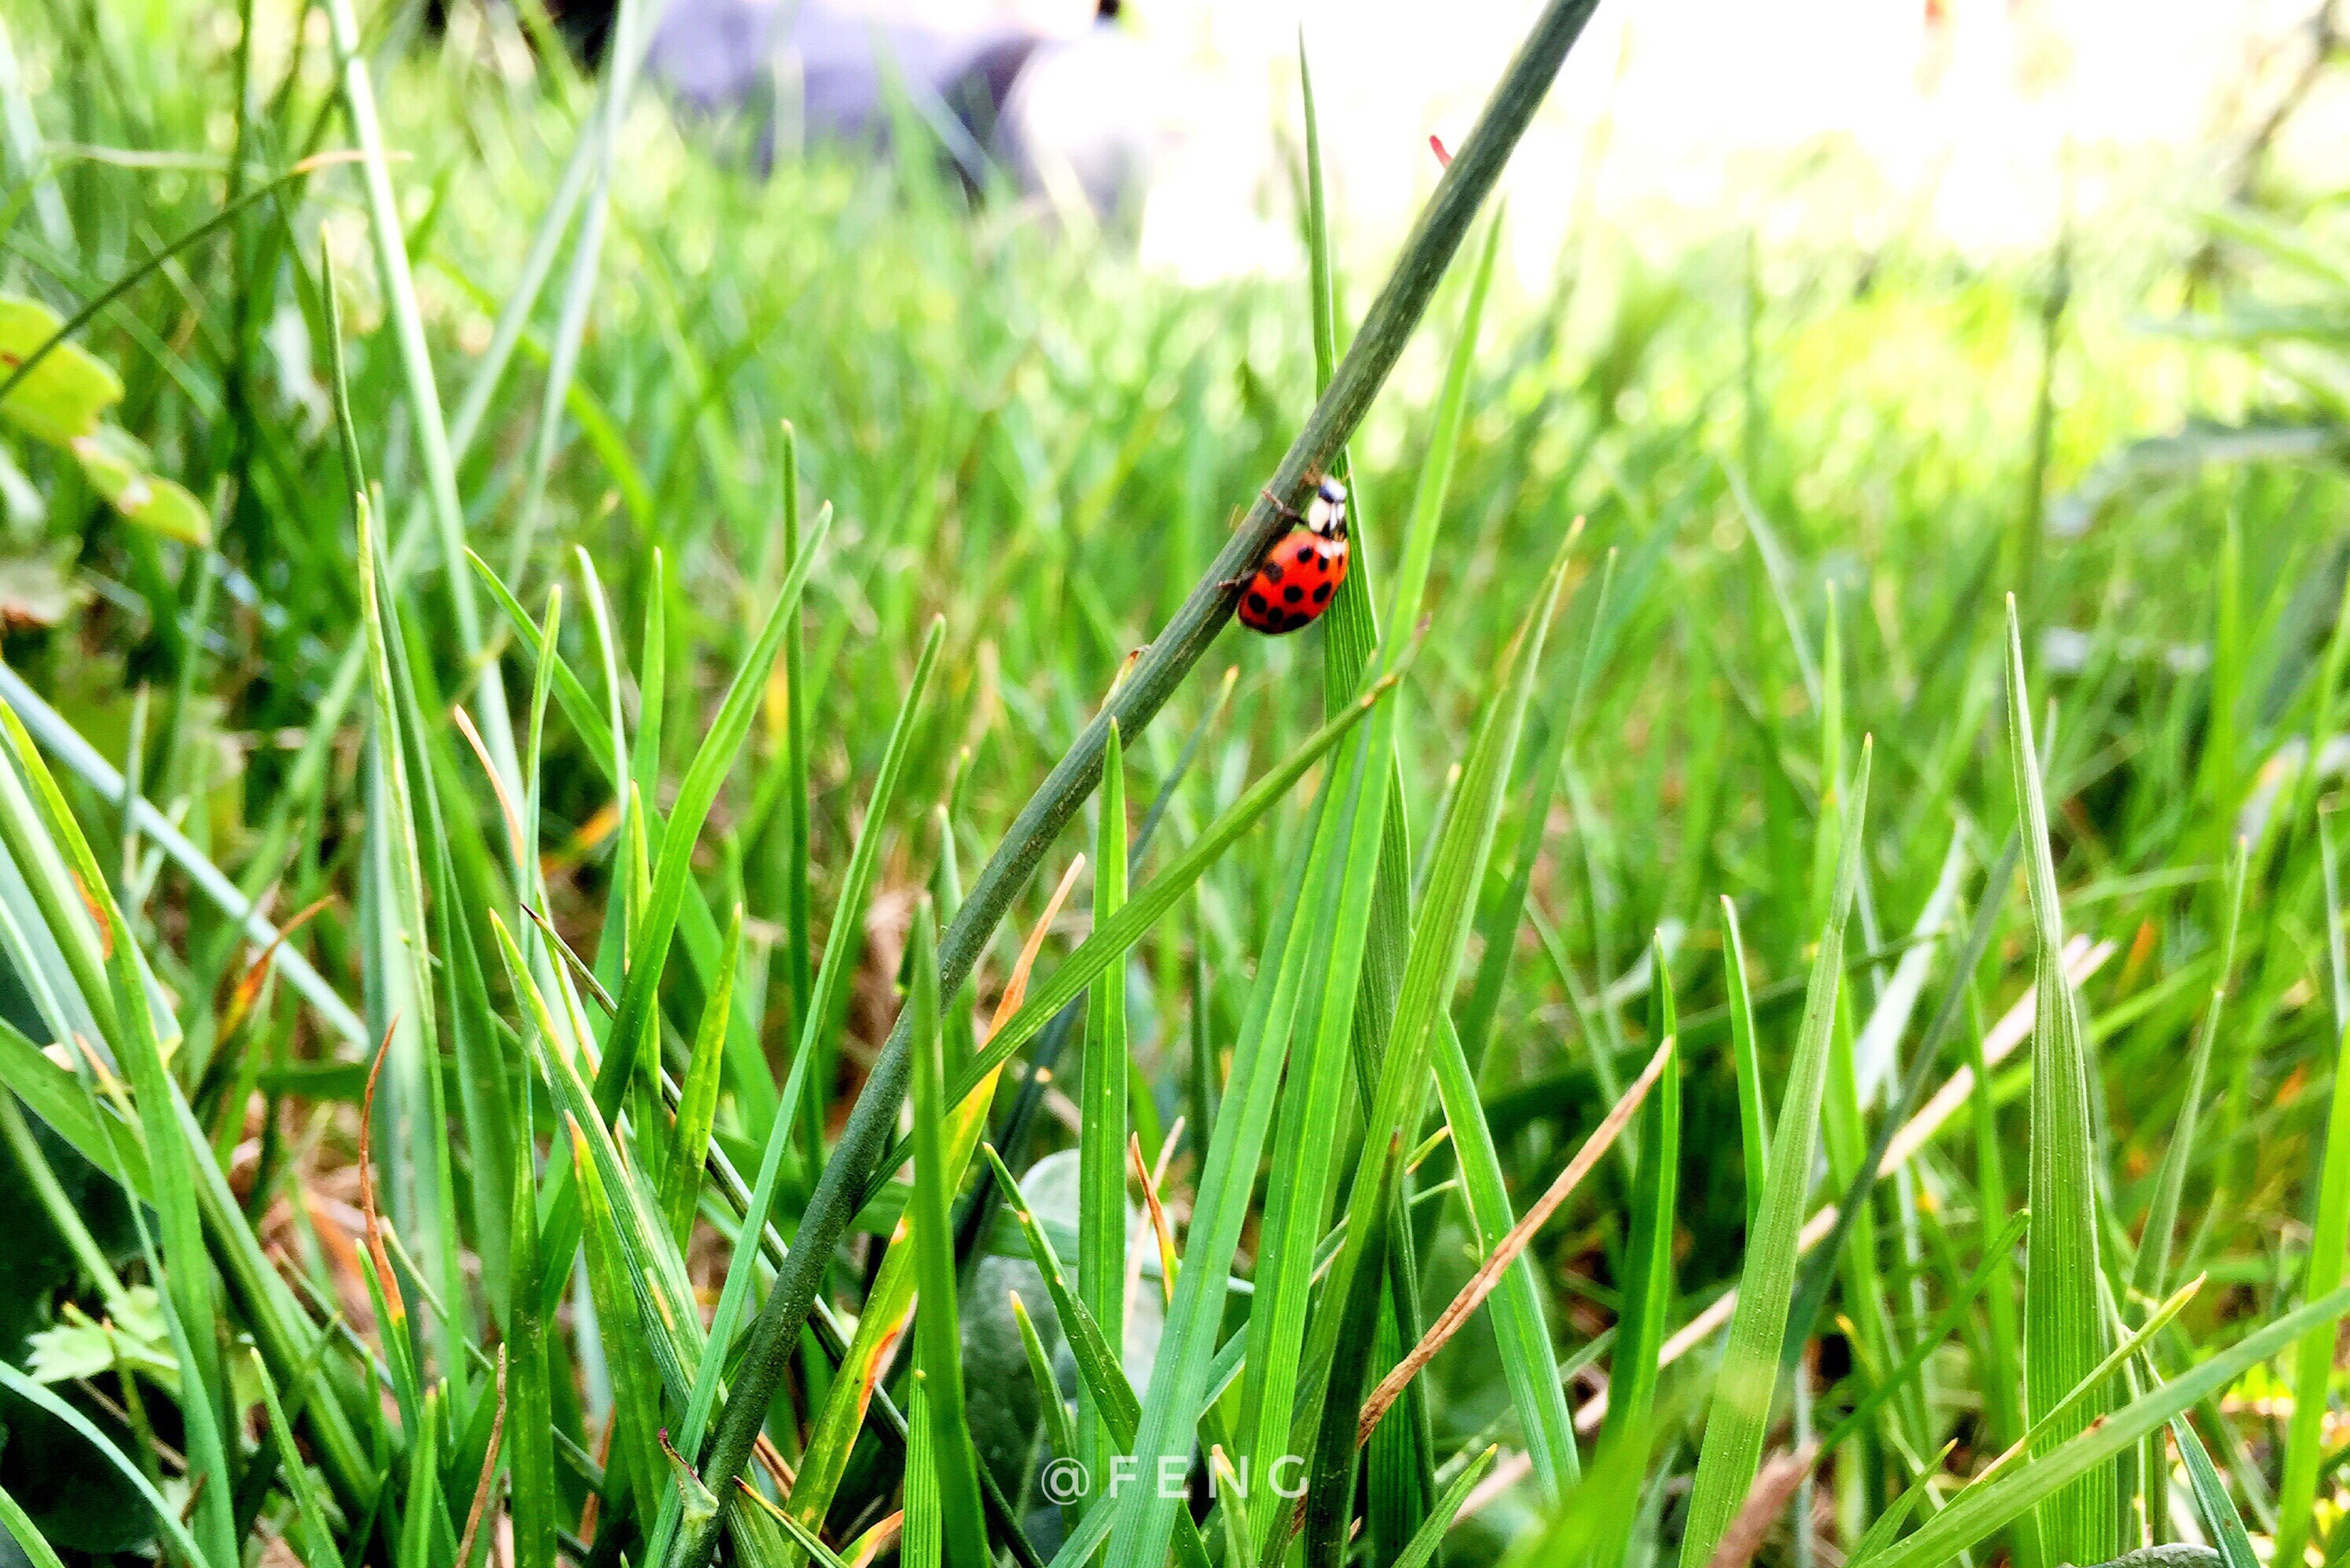 grass, one animal, animals in the wild, insect, animal themes, red, ladybug, wildlife, nature, green color, tiny, growth, plant, day, outdoors, field, animal wildlife, no people, close-up, beauty in nature